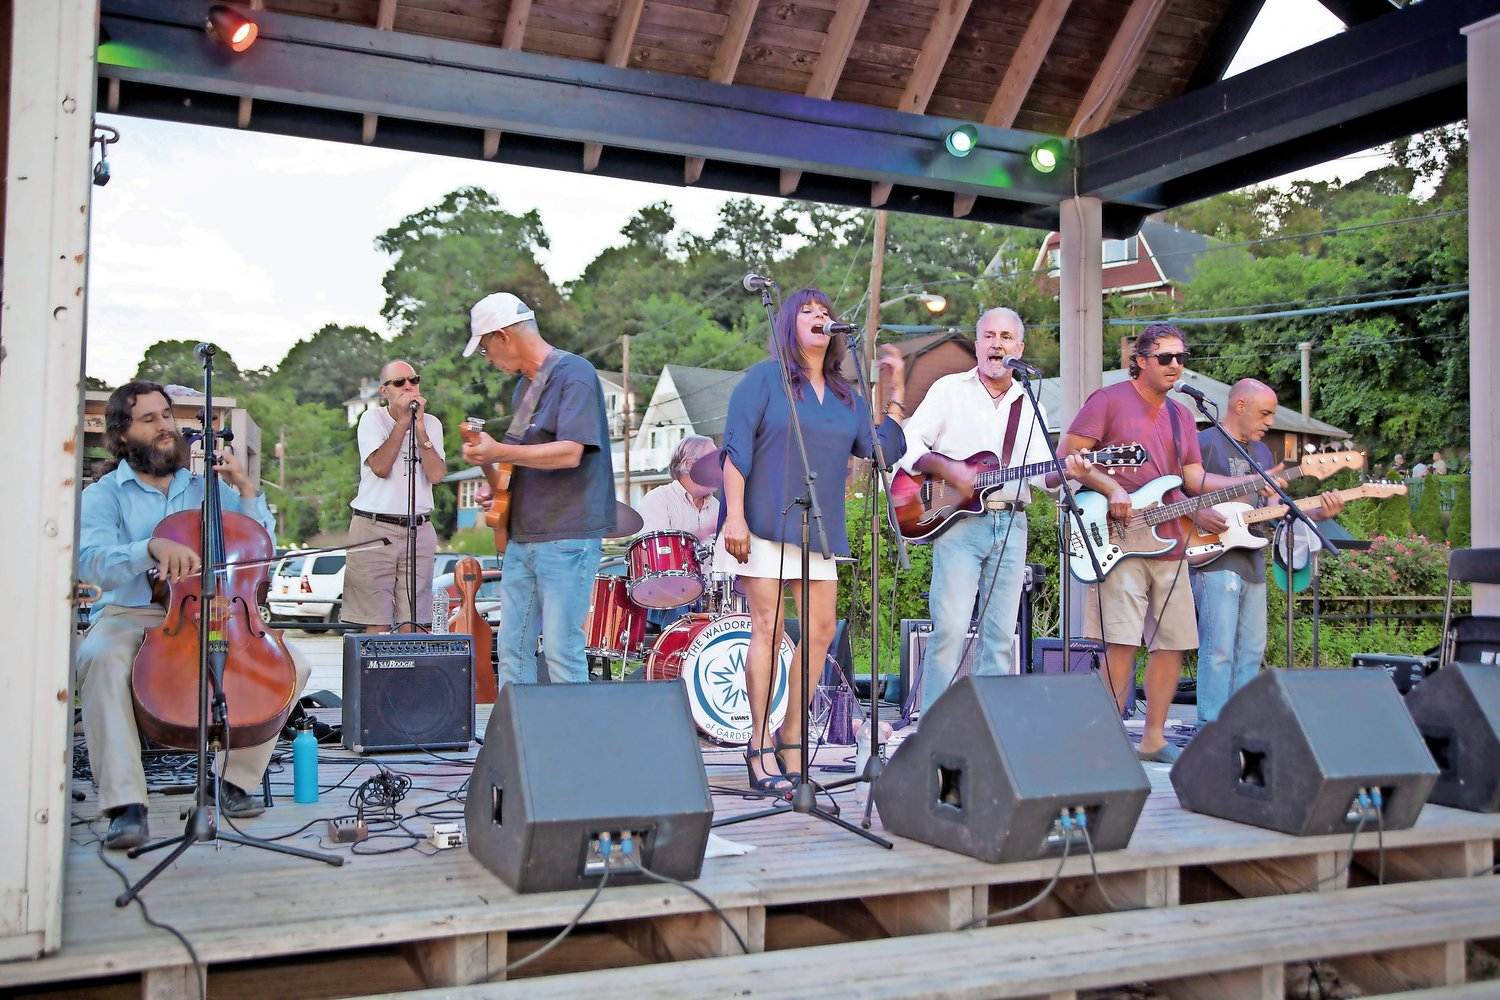 Local band The Lazy Dogs wowed the crowd at Music at the Beach.